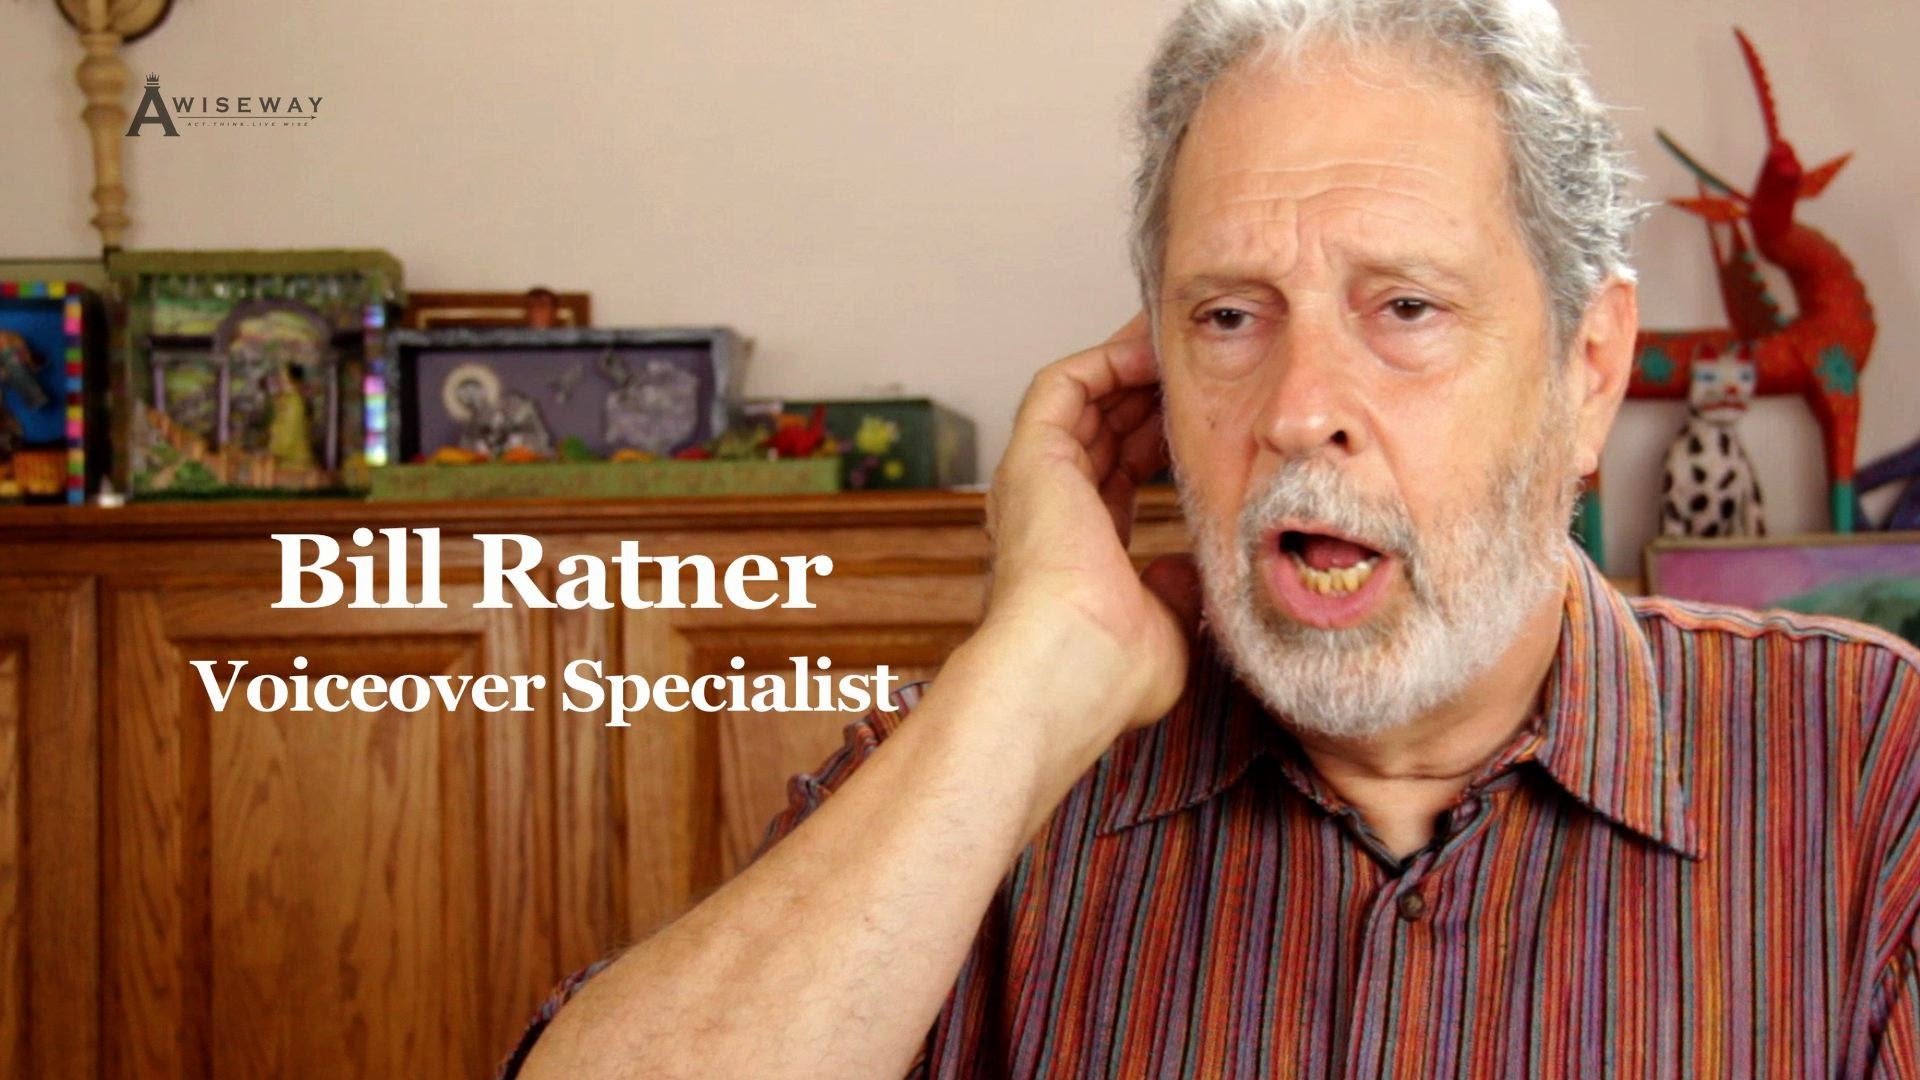 Voiceover Specialist Gives Advice on How to Start Your Voiceover Career